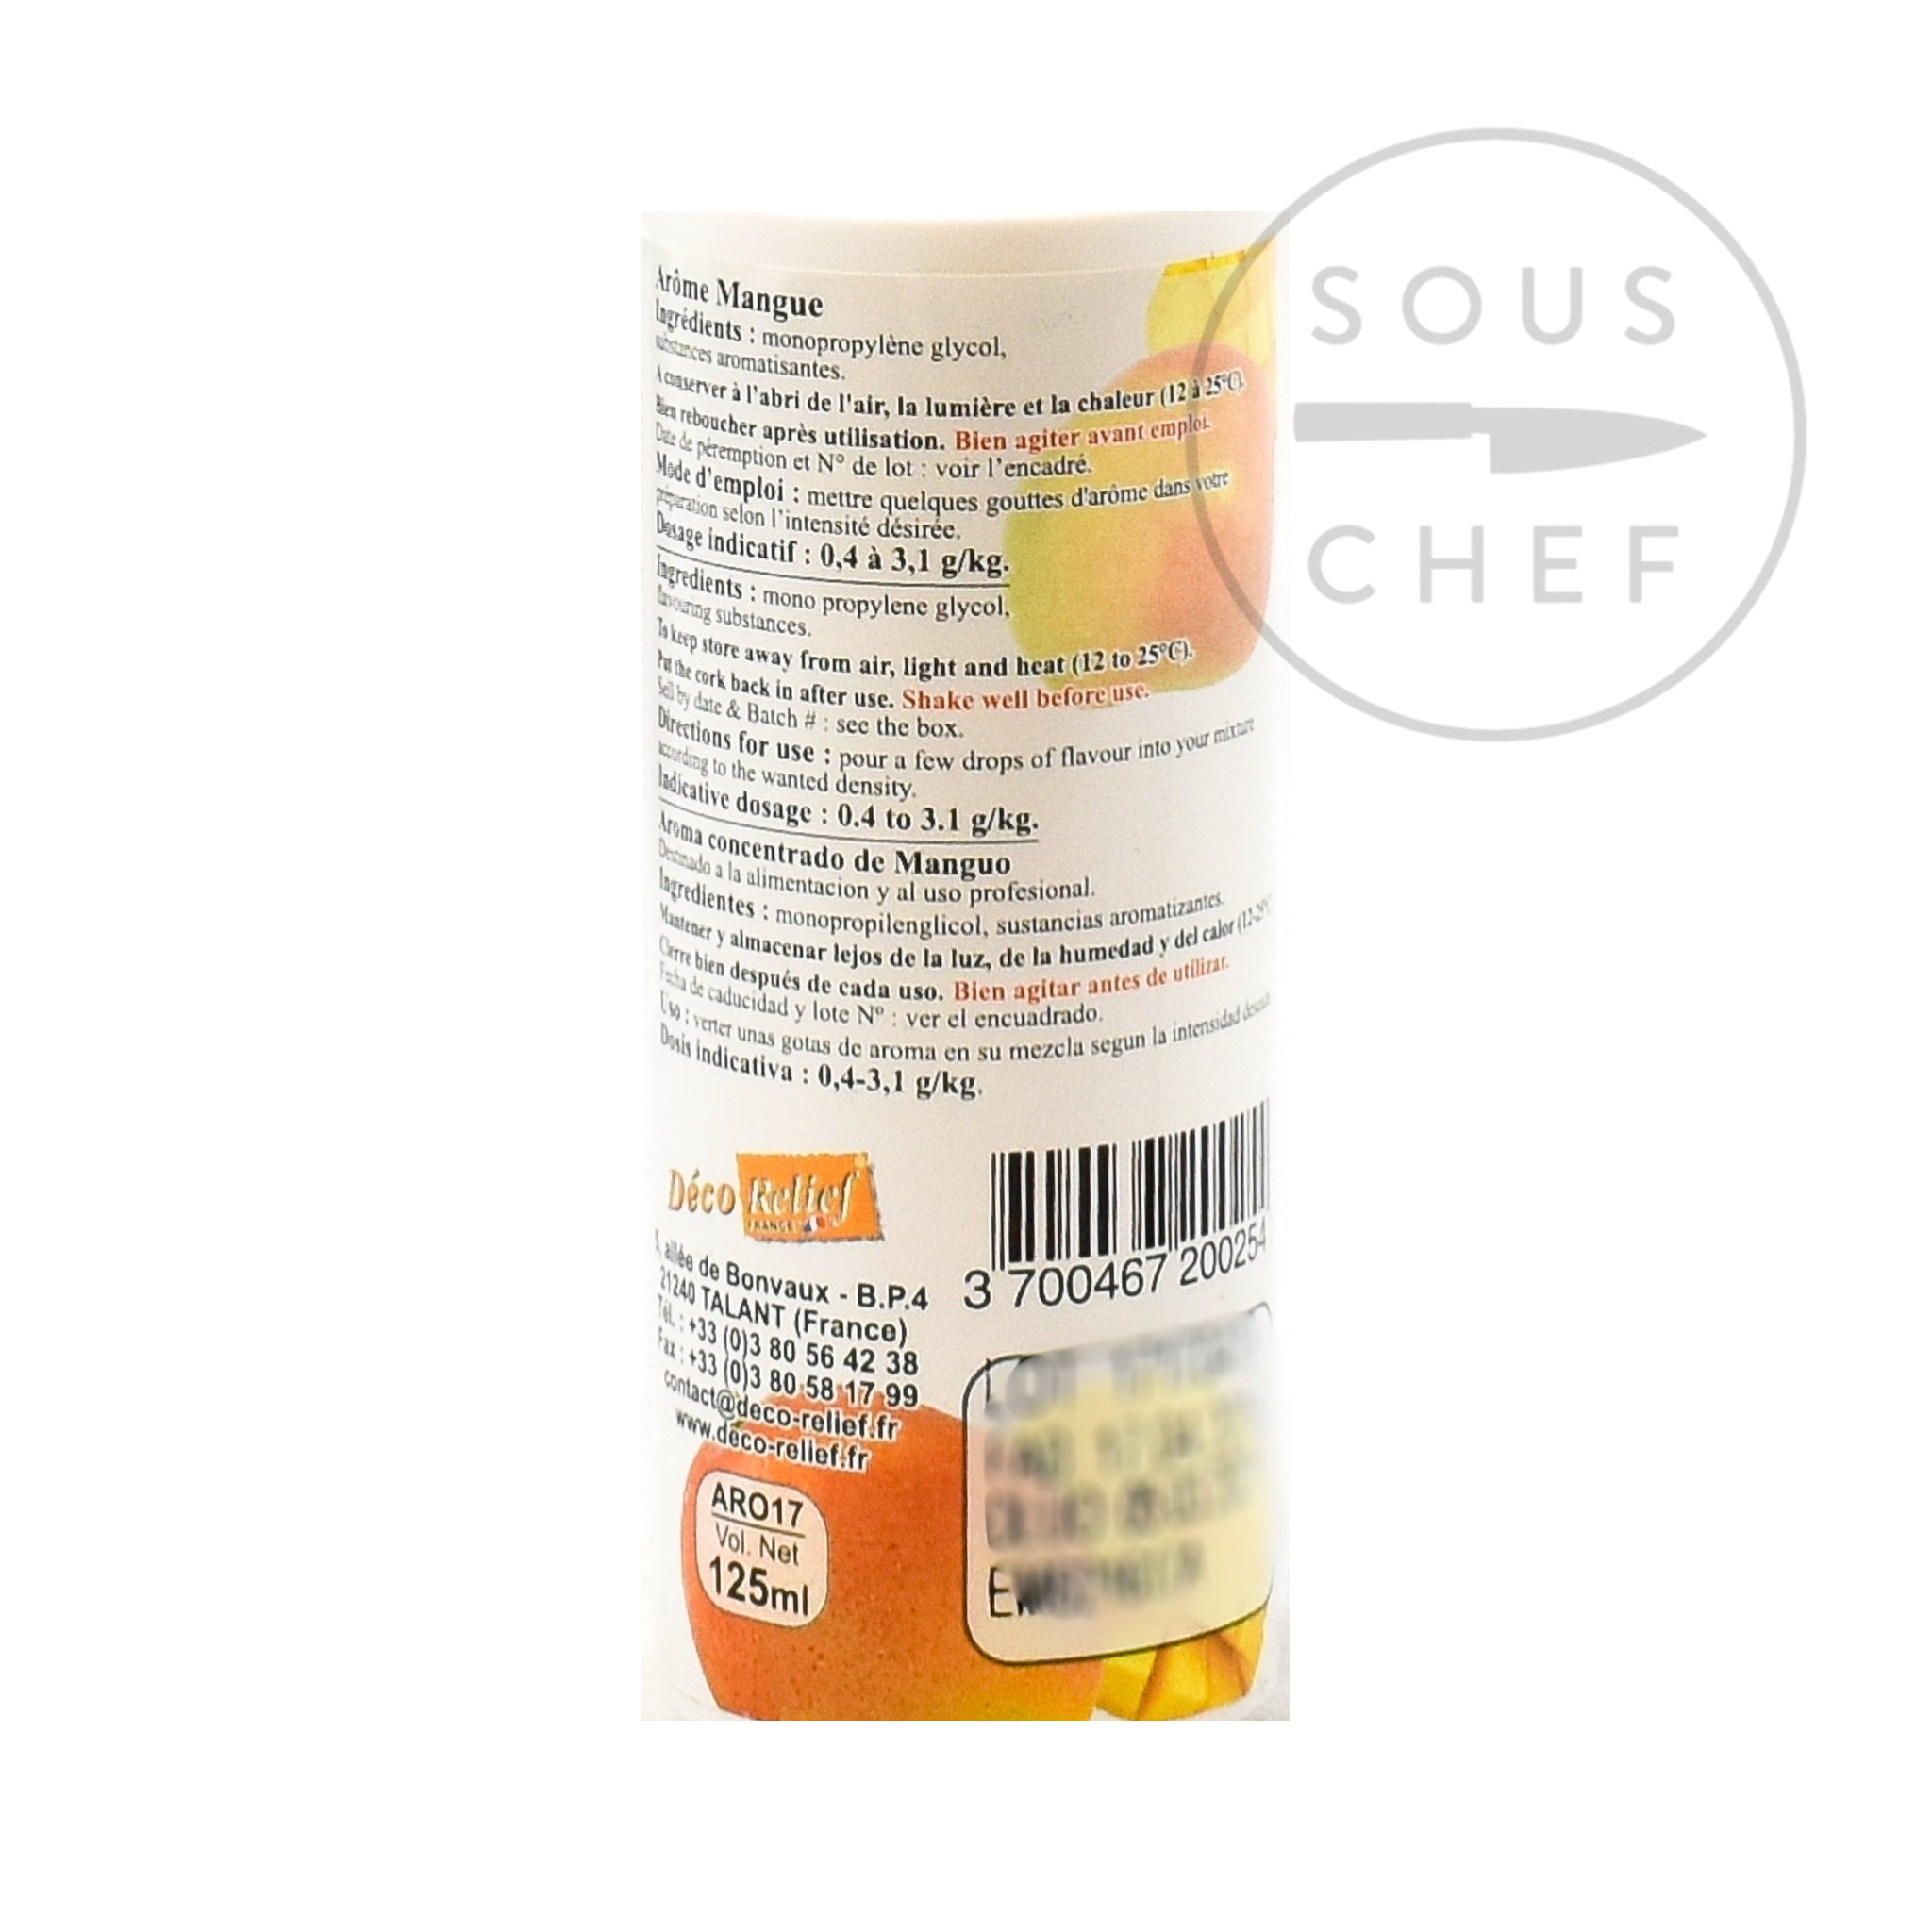 Concentrated Mango Flavour 125ml ingredients